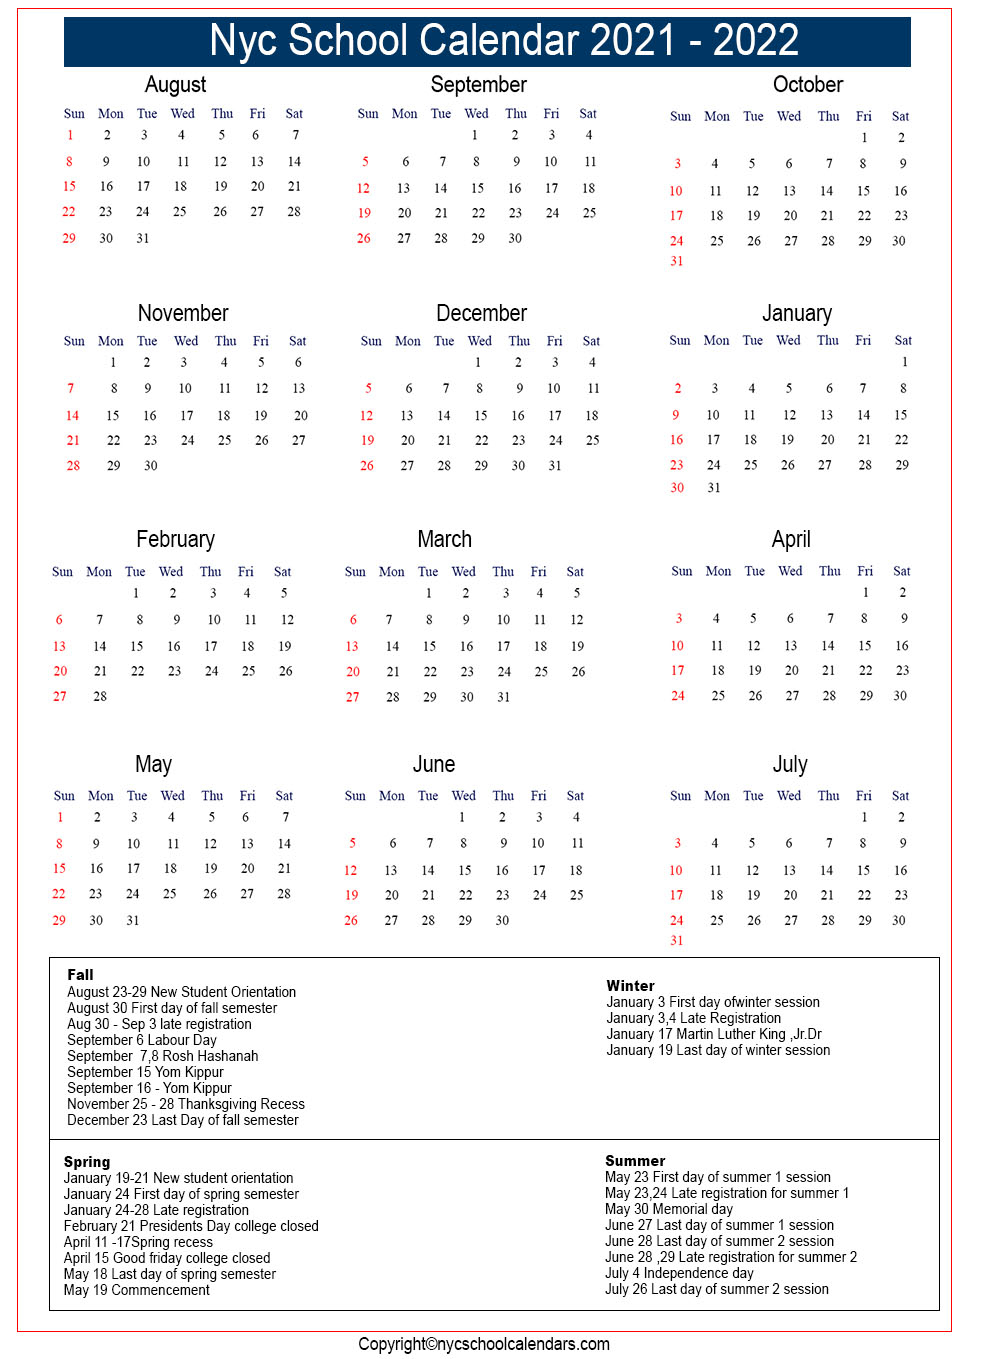 Nyc School Calendar 2021 ✅❤️ With Regard To Niagara Falls School Calendar 2021